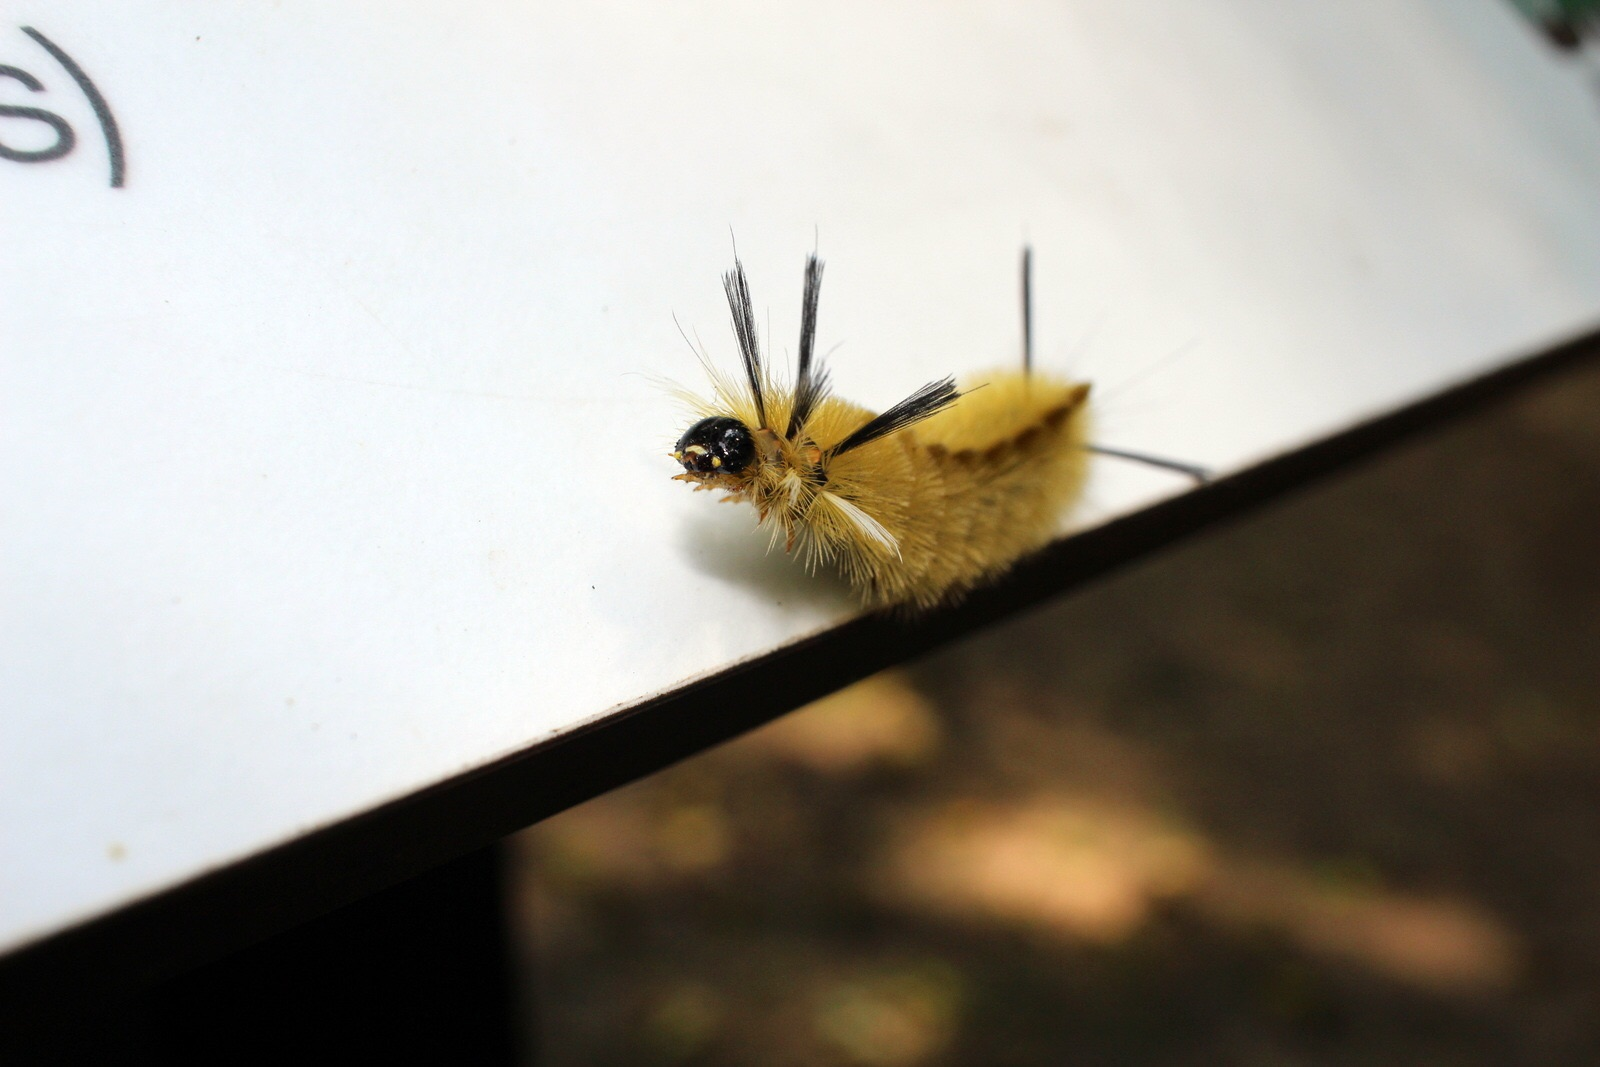 A caterpillar greeted me at the visitor center.